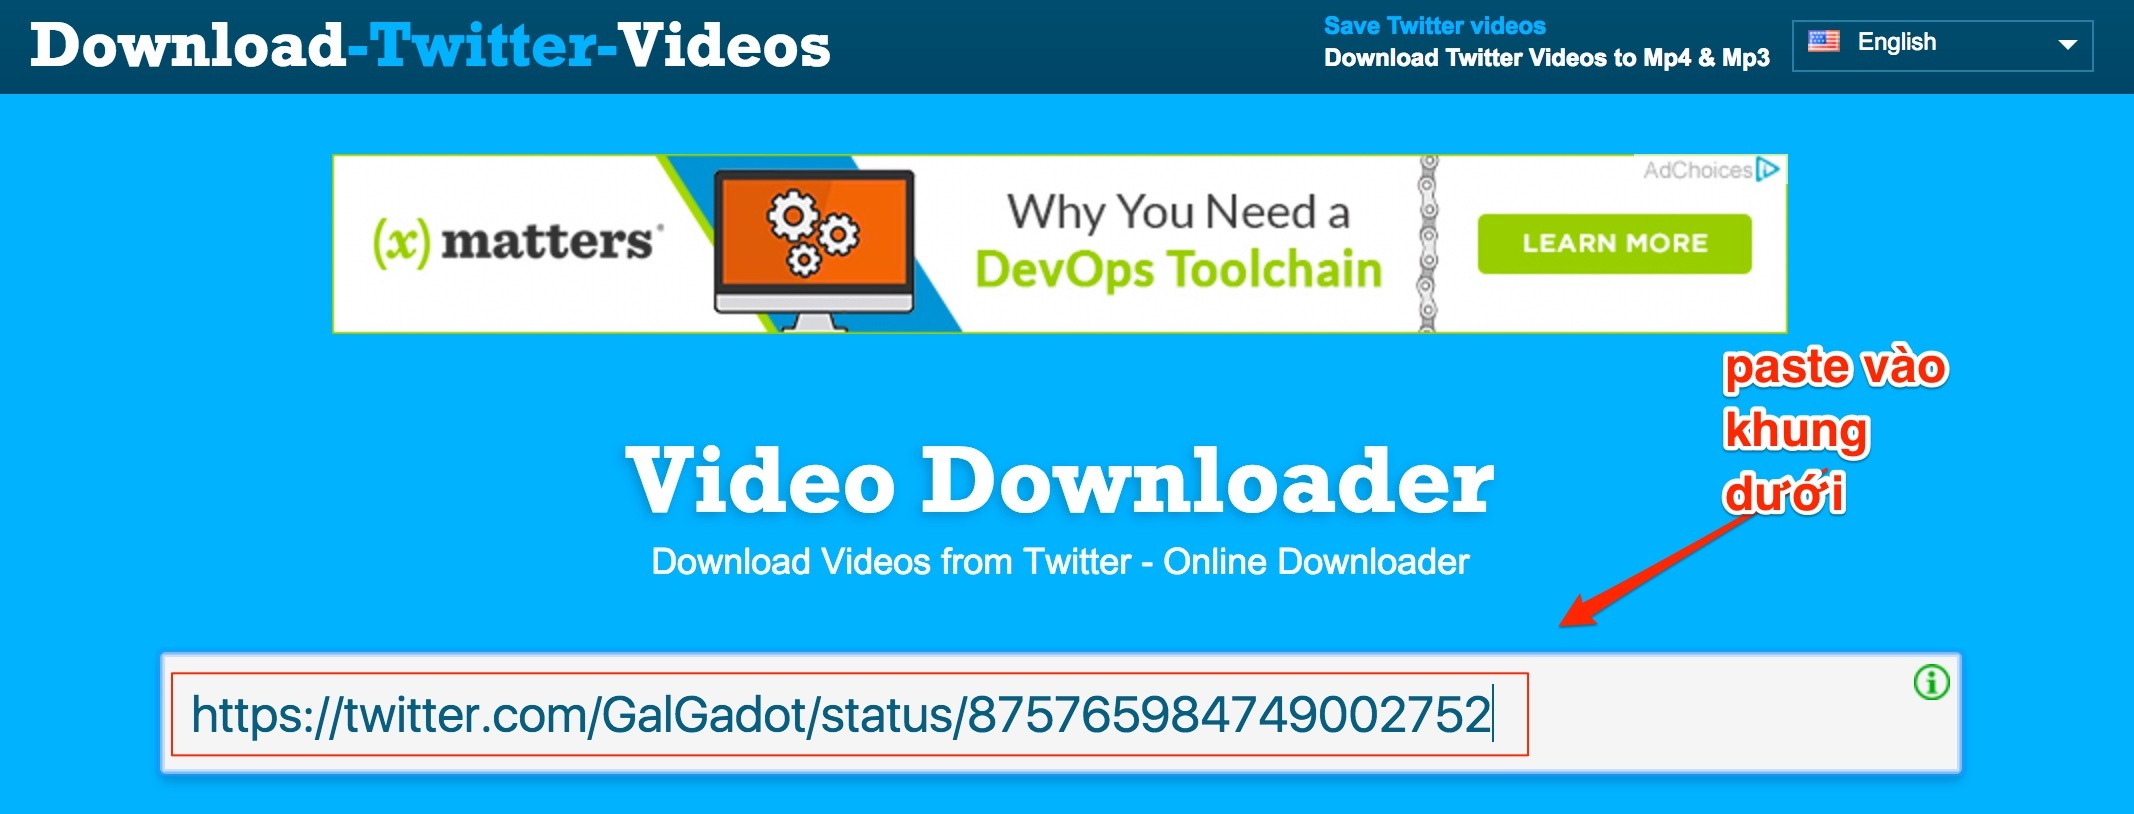 download video tren twitter 4